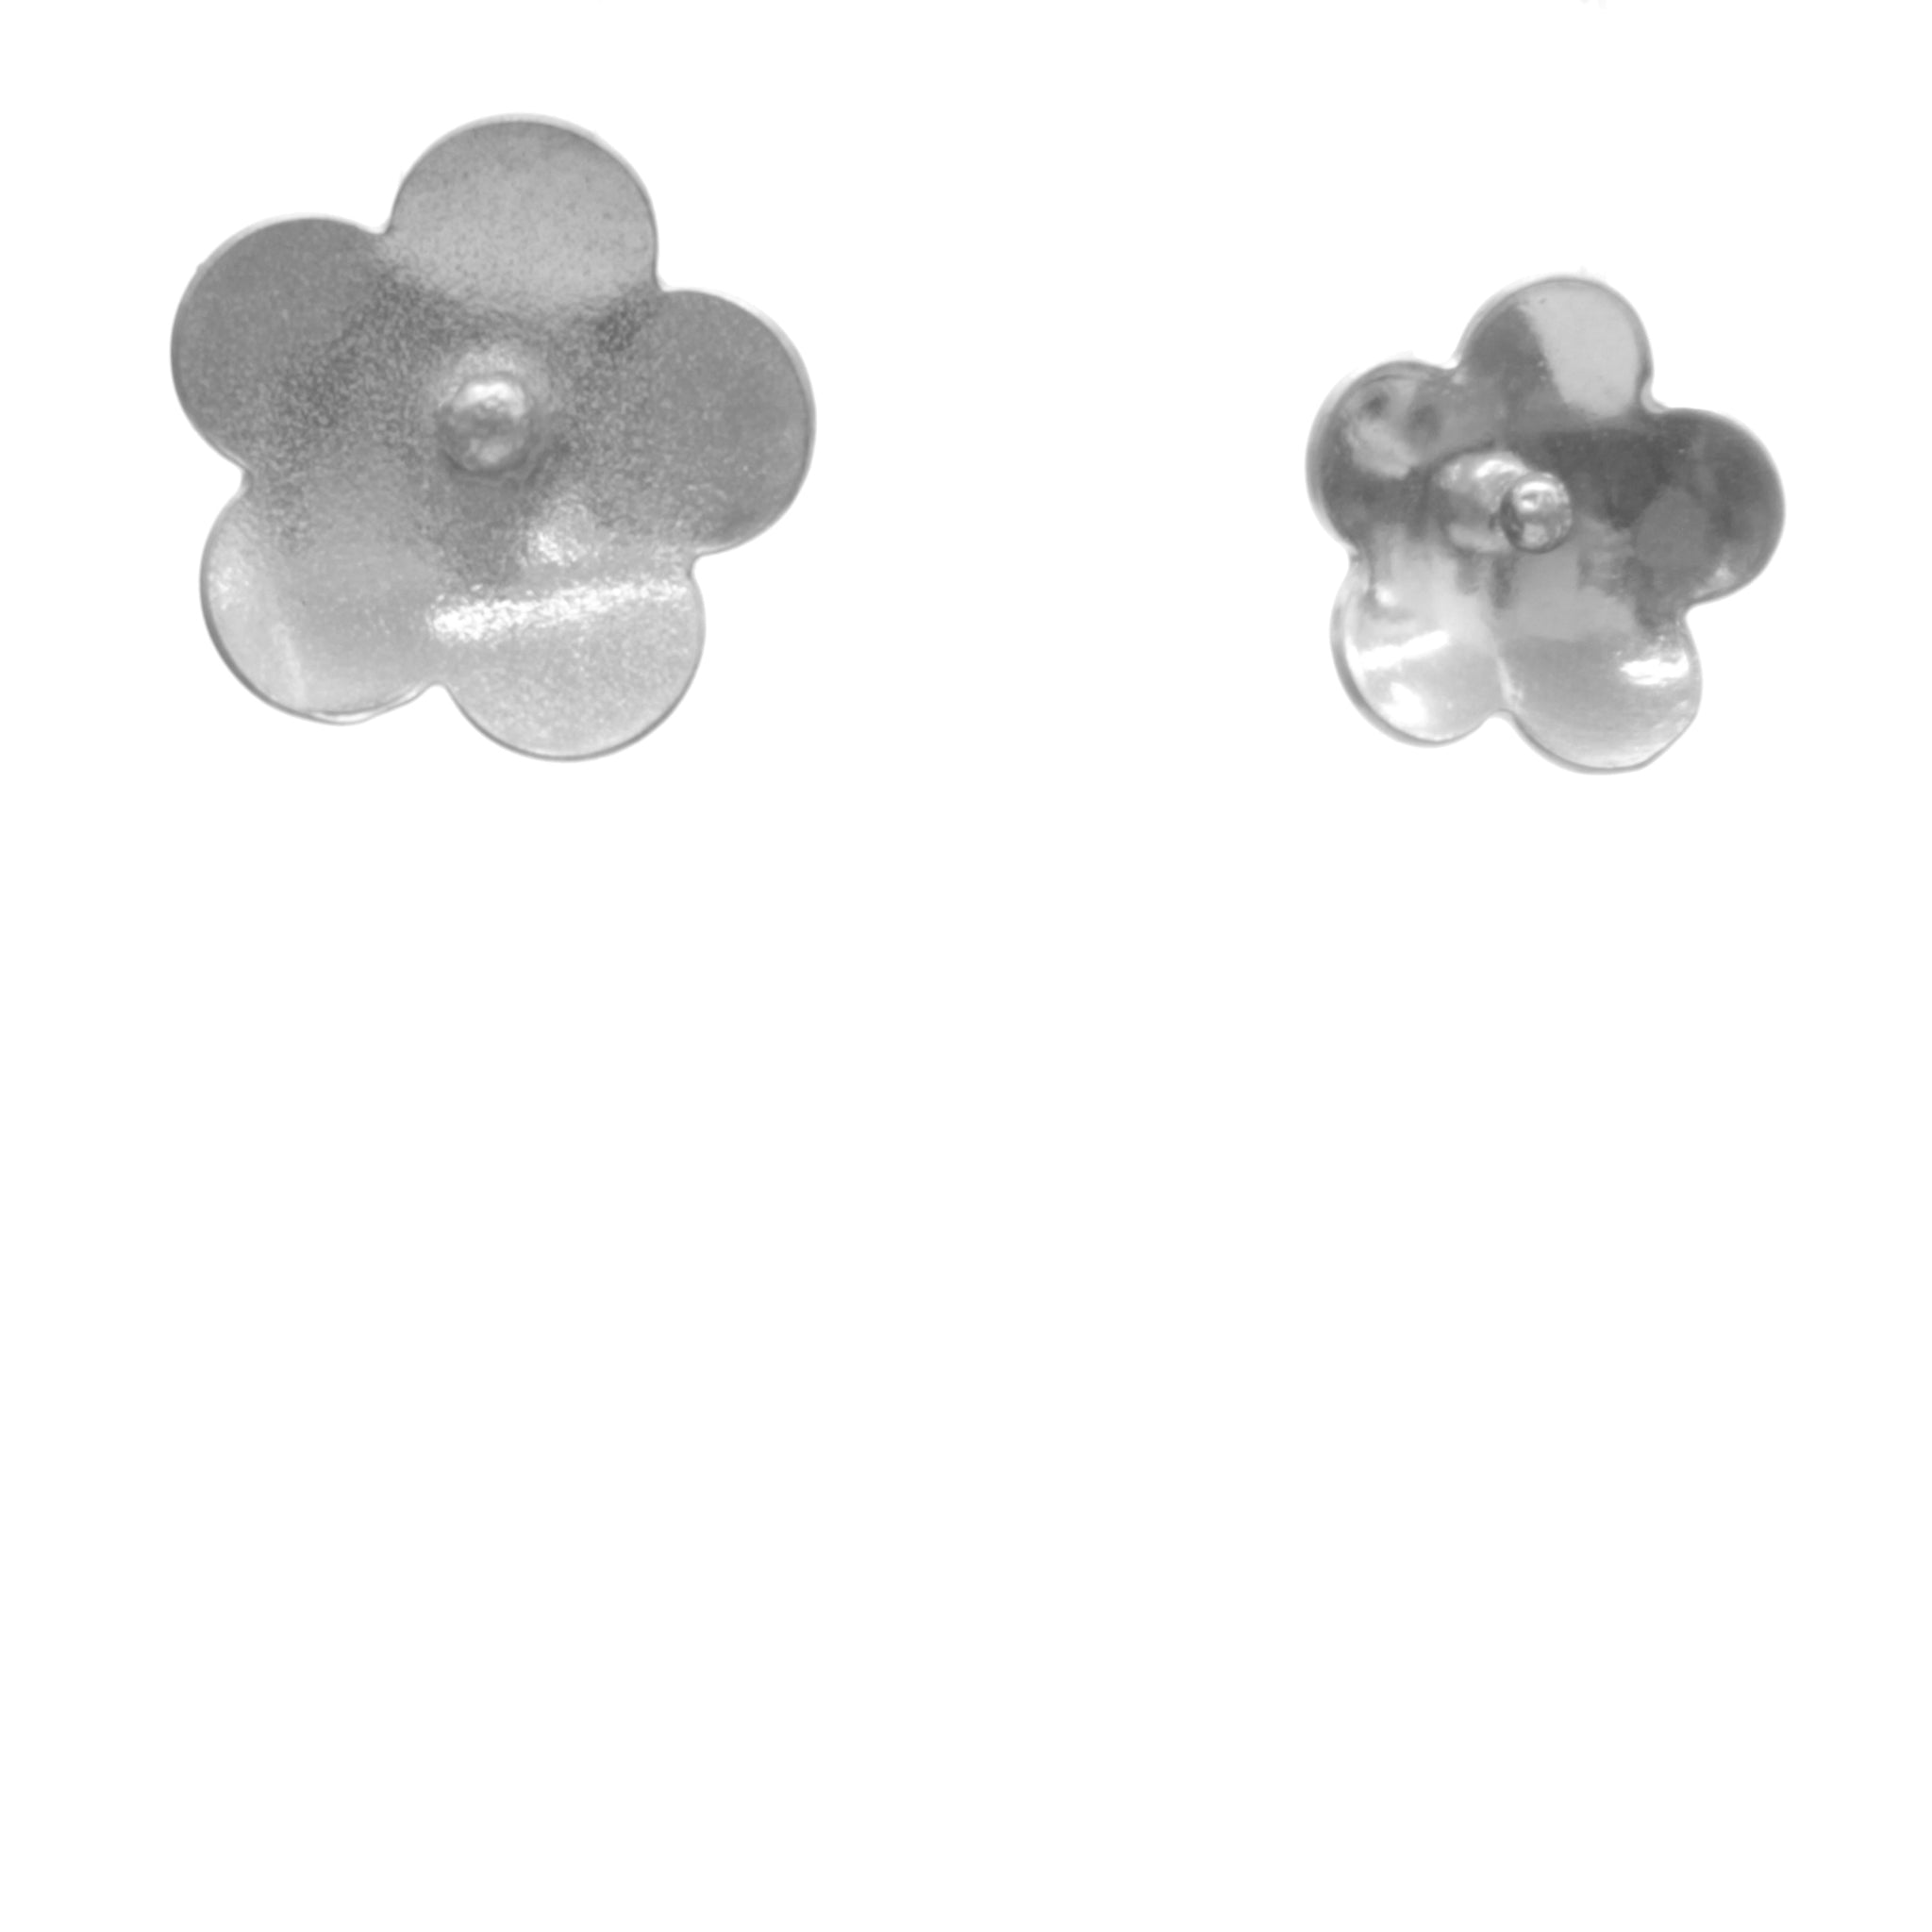 Forget-Me-Not Earrings, Single Blossom Stud